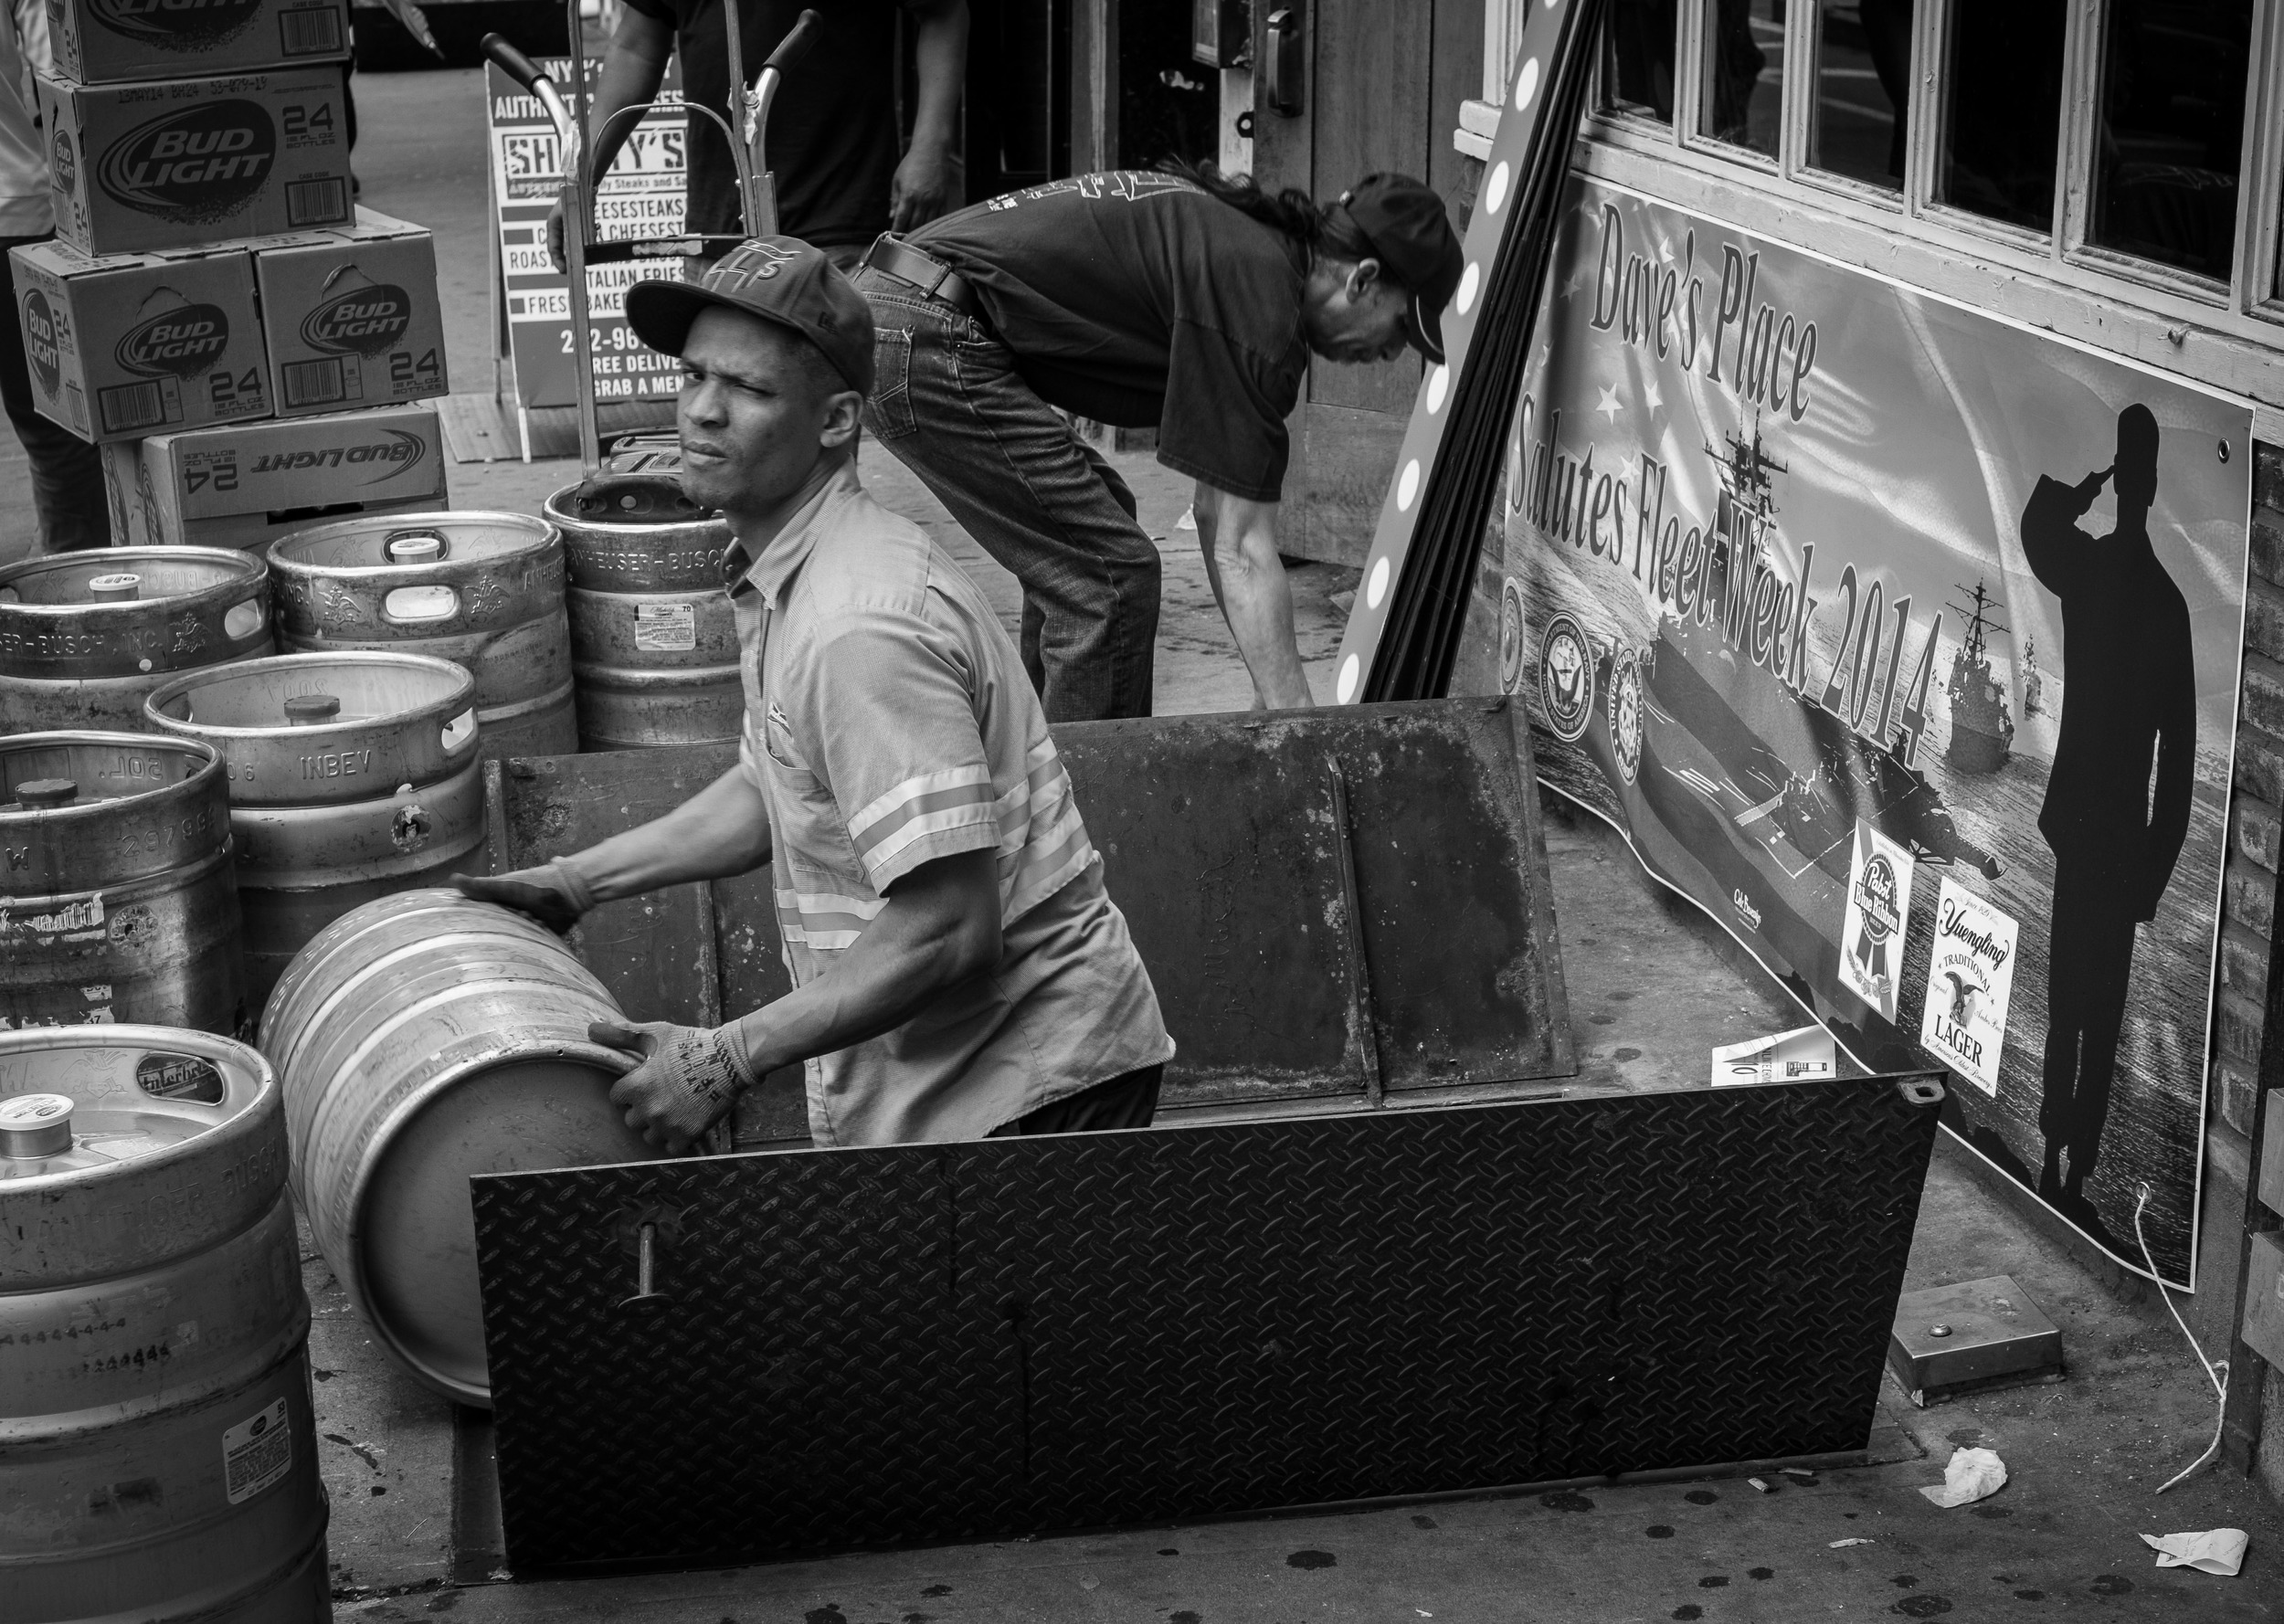 In street photography,you have to always be ready to shoot. In this case I noticed the Fleet Week sign and the man loading kegs as I walked by. I quickly turned and got off about a dozen frames before I moved on. 1/125, f5.6 at ISO 500.